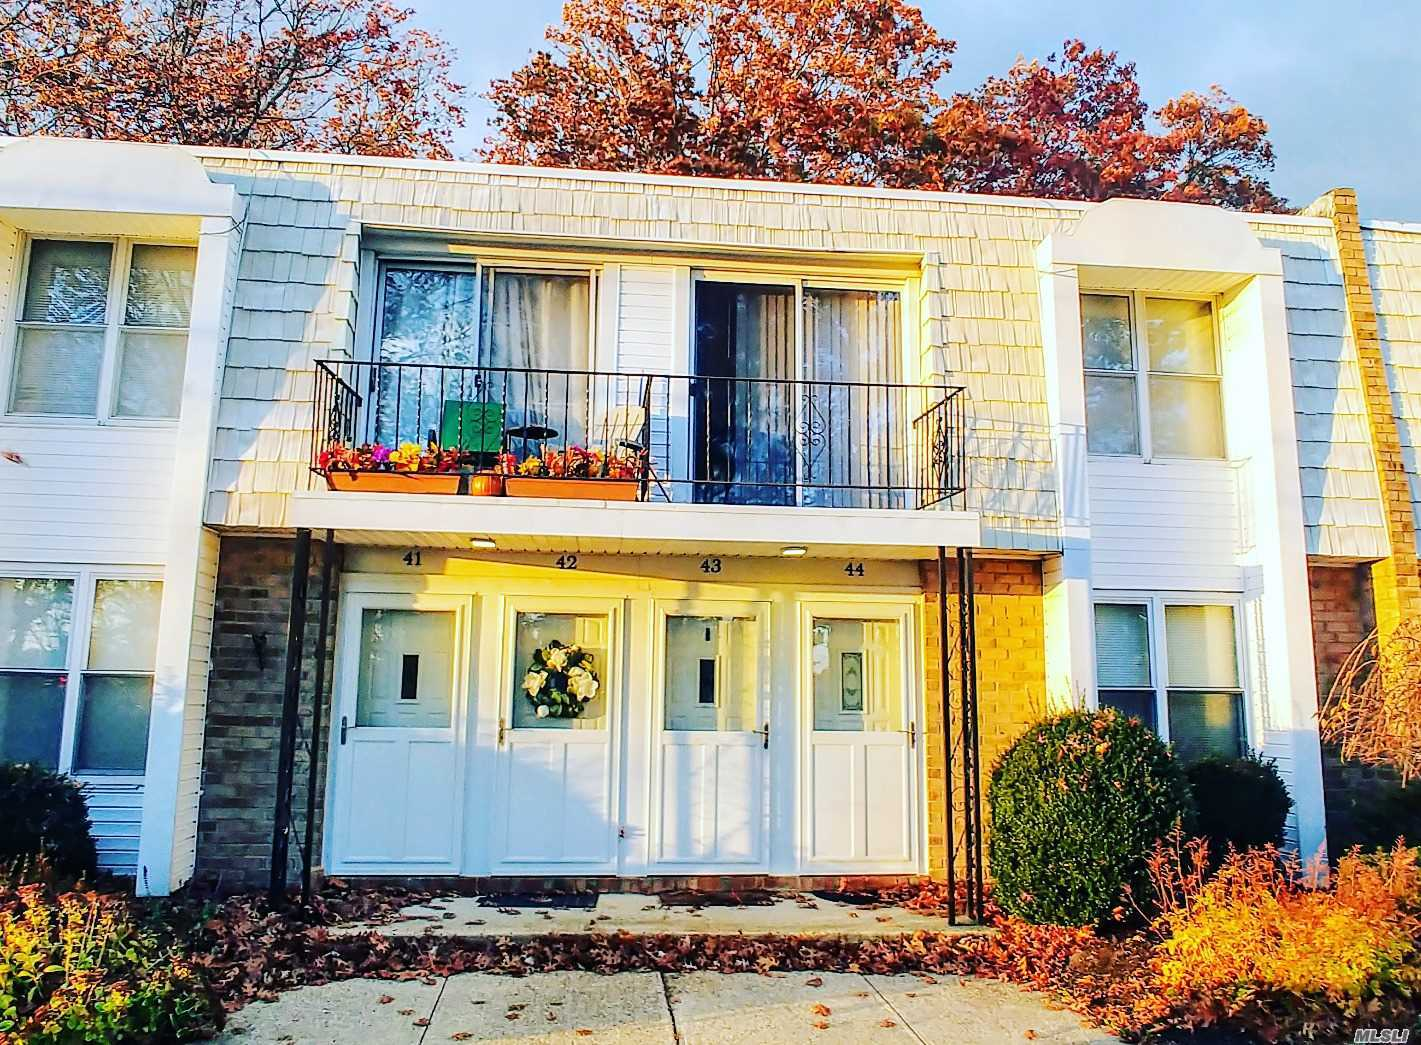 This Upper Level Co-Op Is A Must See! Located In A Well Maintained Community And Close To Shopping, Beaches, And Restaurants. This Unit Offers A Spacious Living Room / Dining Area That's Sunny And Bright From The Sliding Doors That Leads To The Private Balcony. New Carpet And Appliances. Led Lighting Throughout. Bedroom Has A Walk-In-Closet. Laundry Site Is In The Same Building. Common Charges Include: Taxes, Heat, Gas, Water, Garbage, Snow Removal, And Exterior Maintenance.